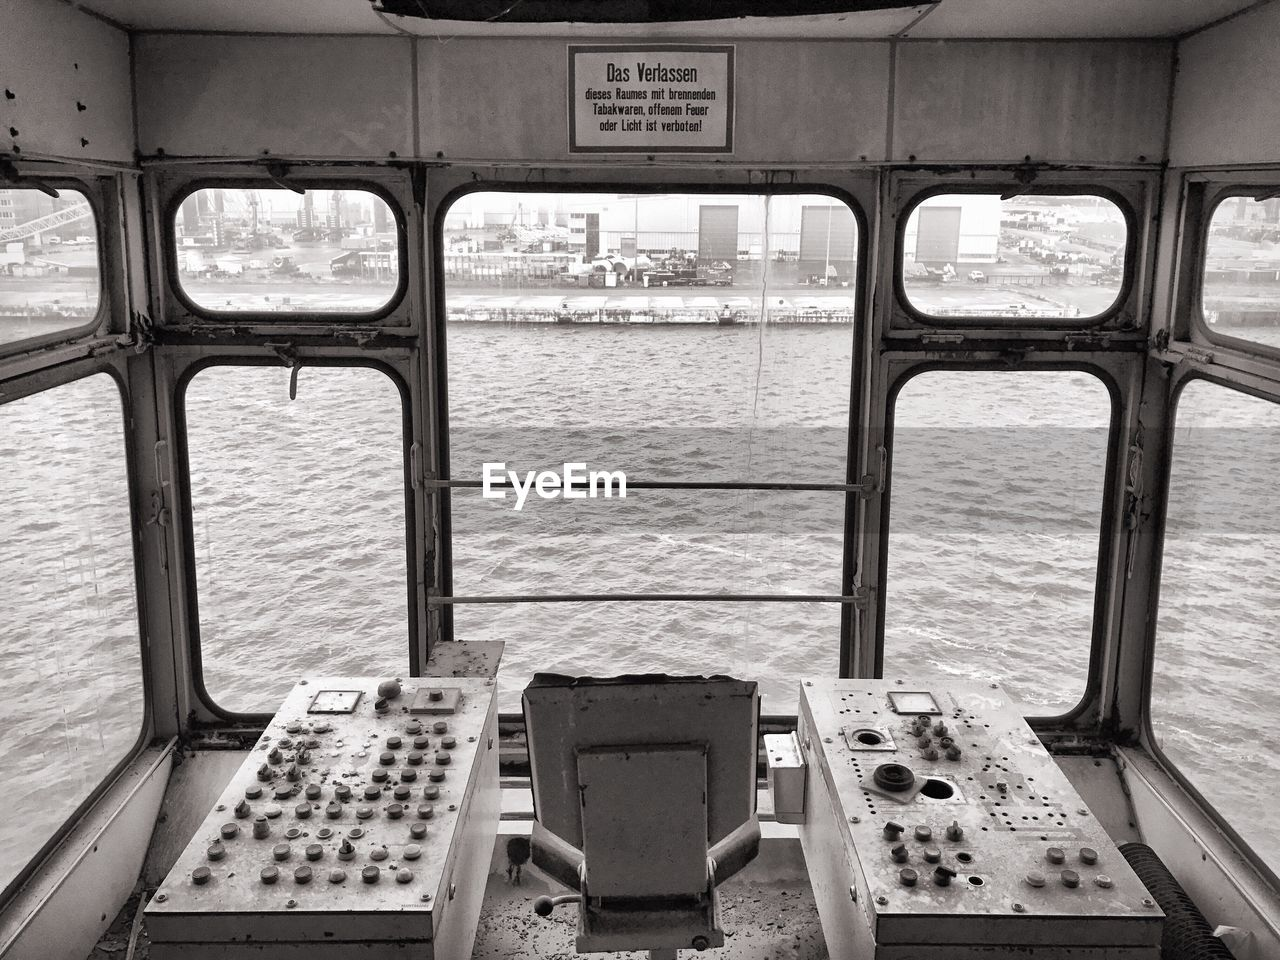 Ferry sailing on sea seen through windows